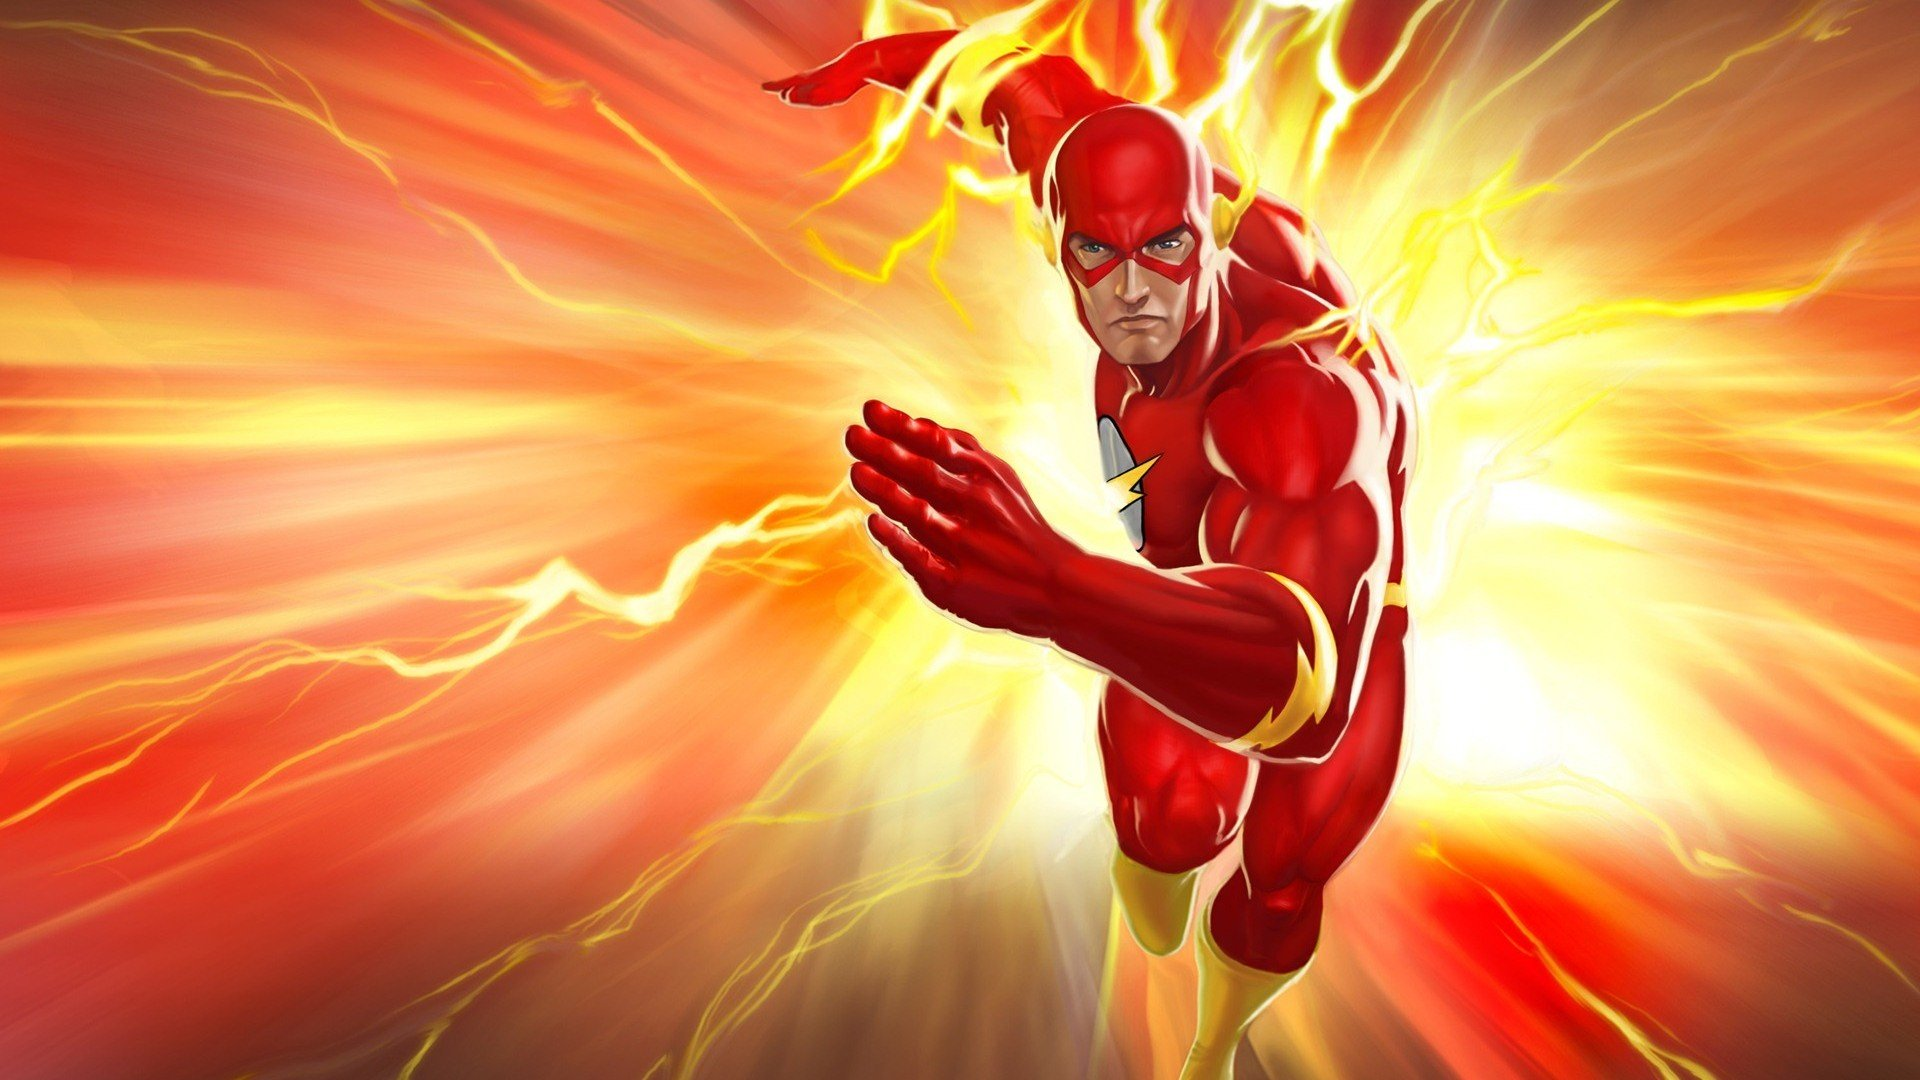 49 The Flash Wallpaper Hd On Wallpapersafari